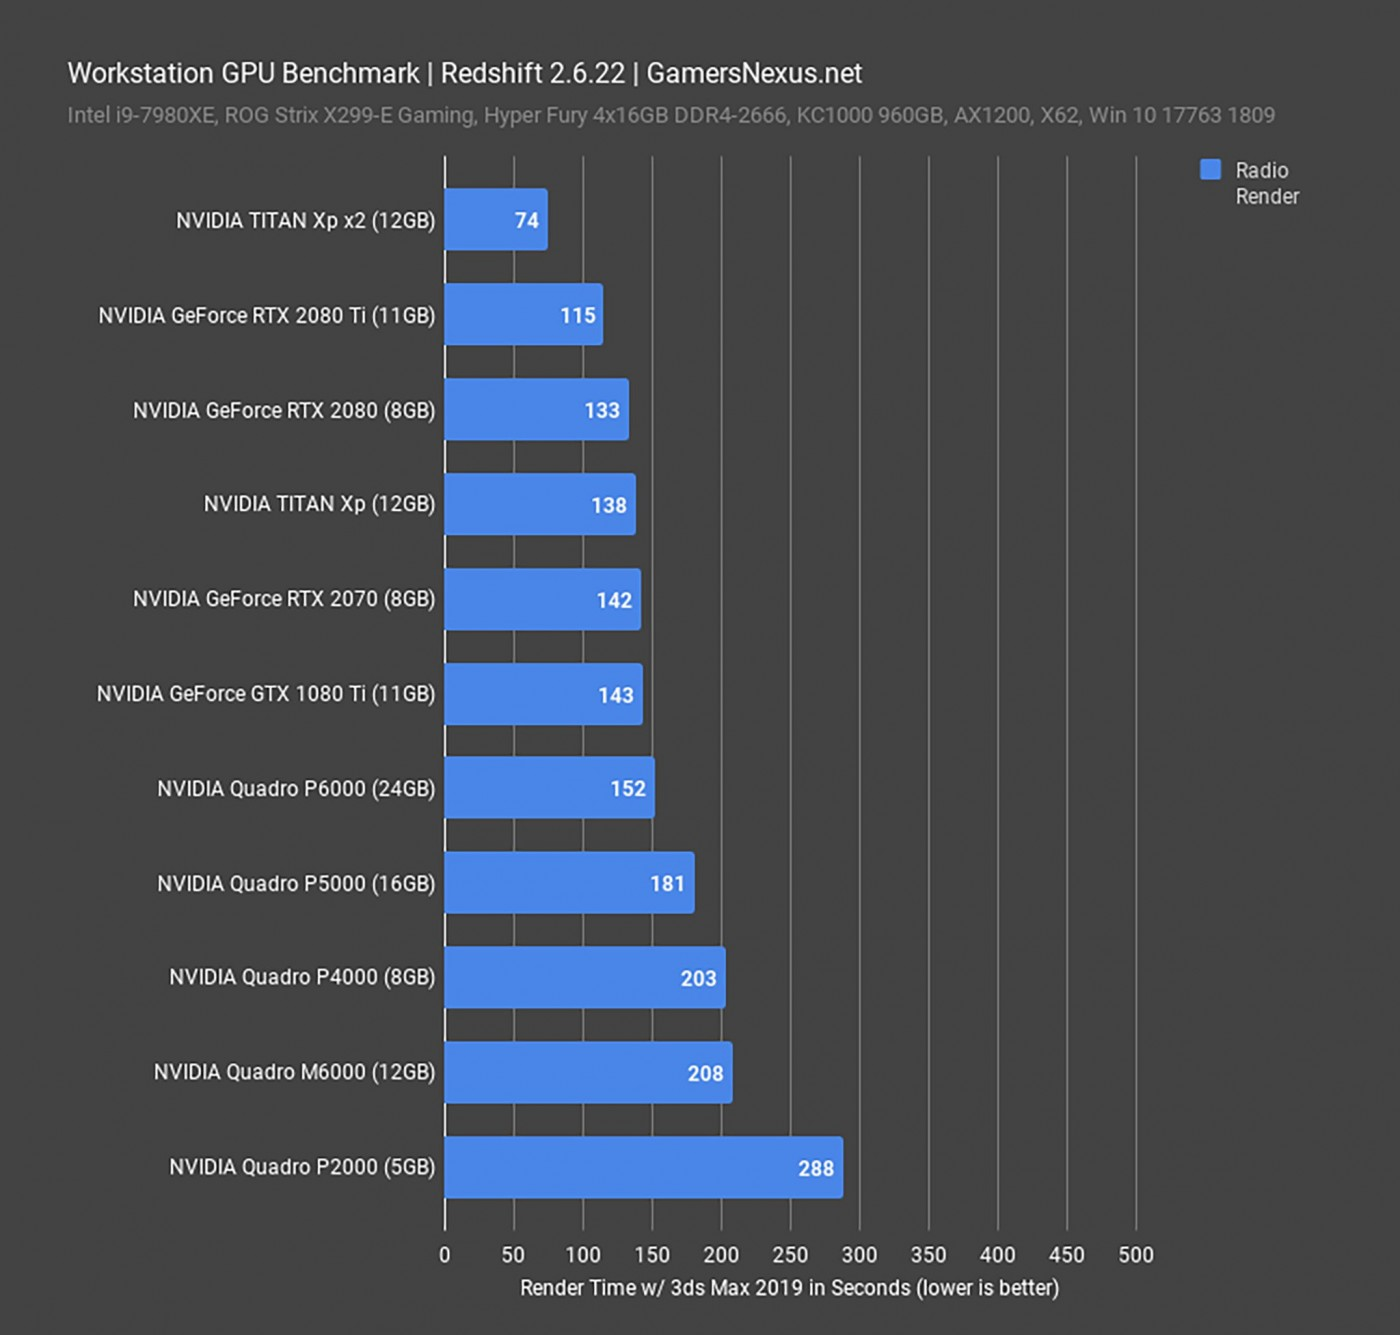 Đang tải workstation-gpu-benchmark_redshift.jpg…